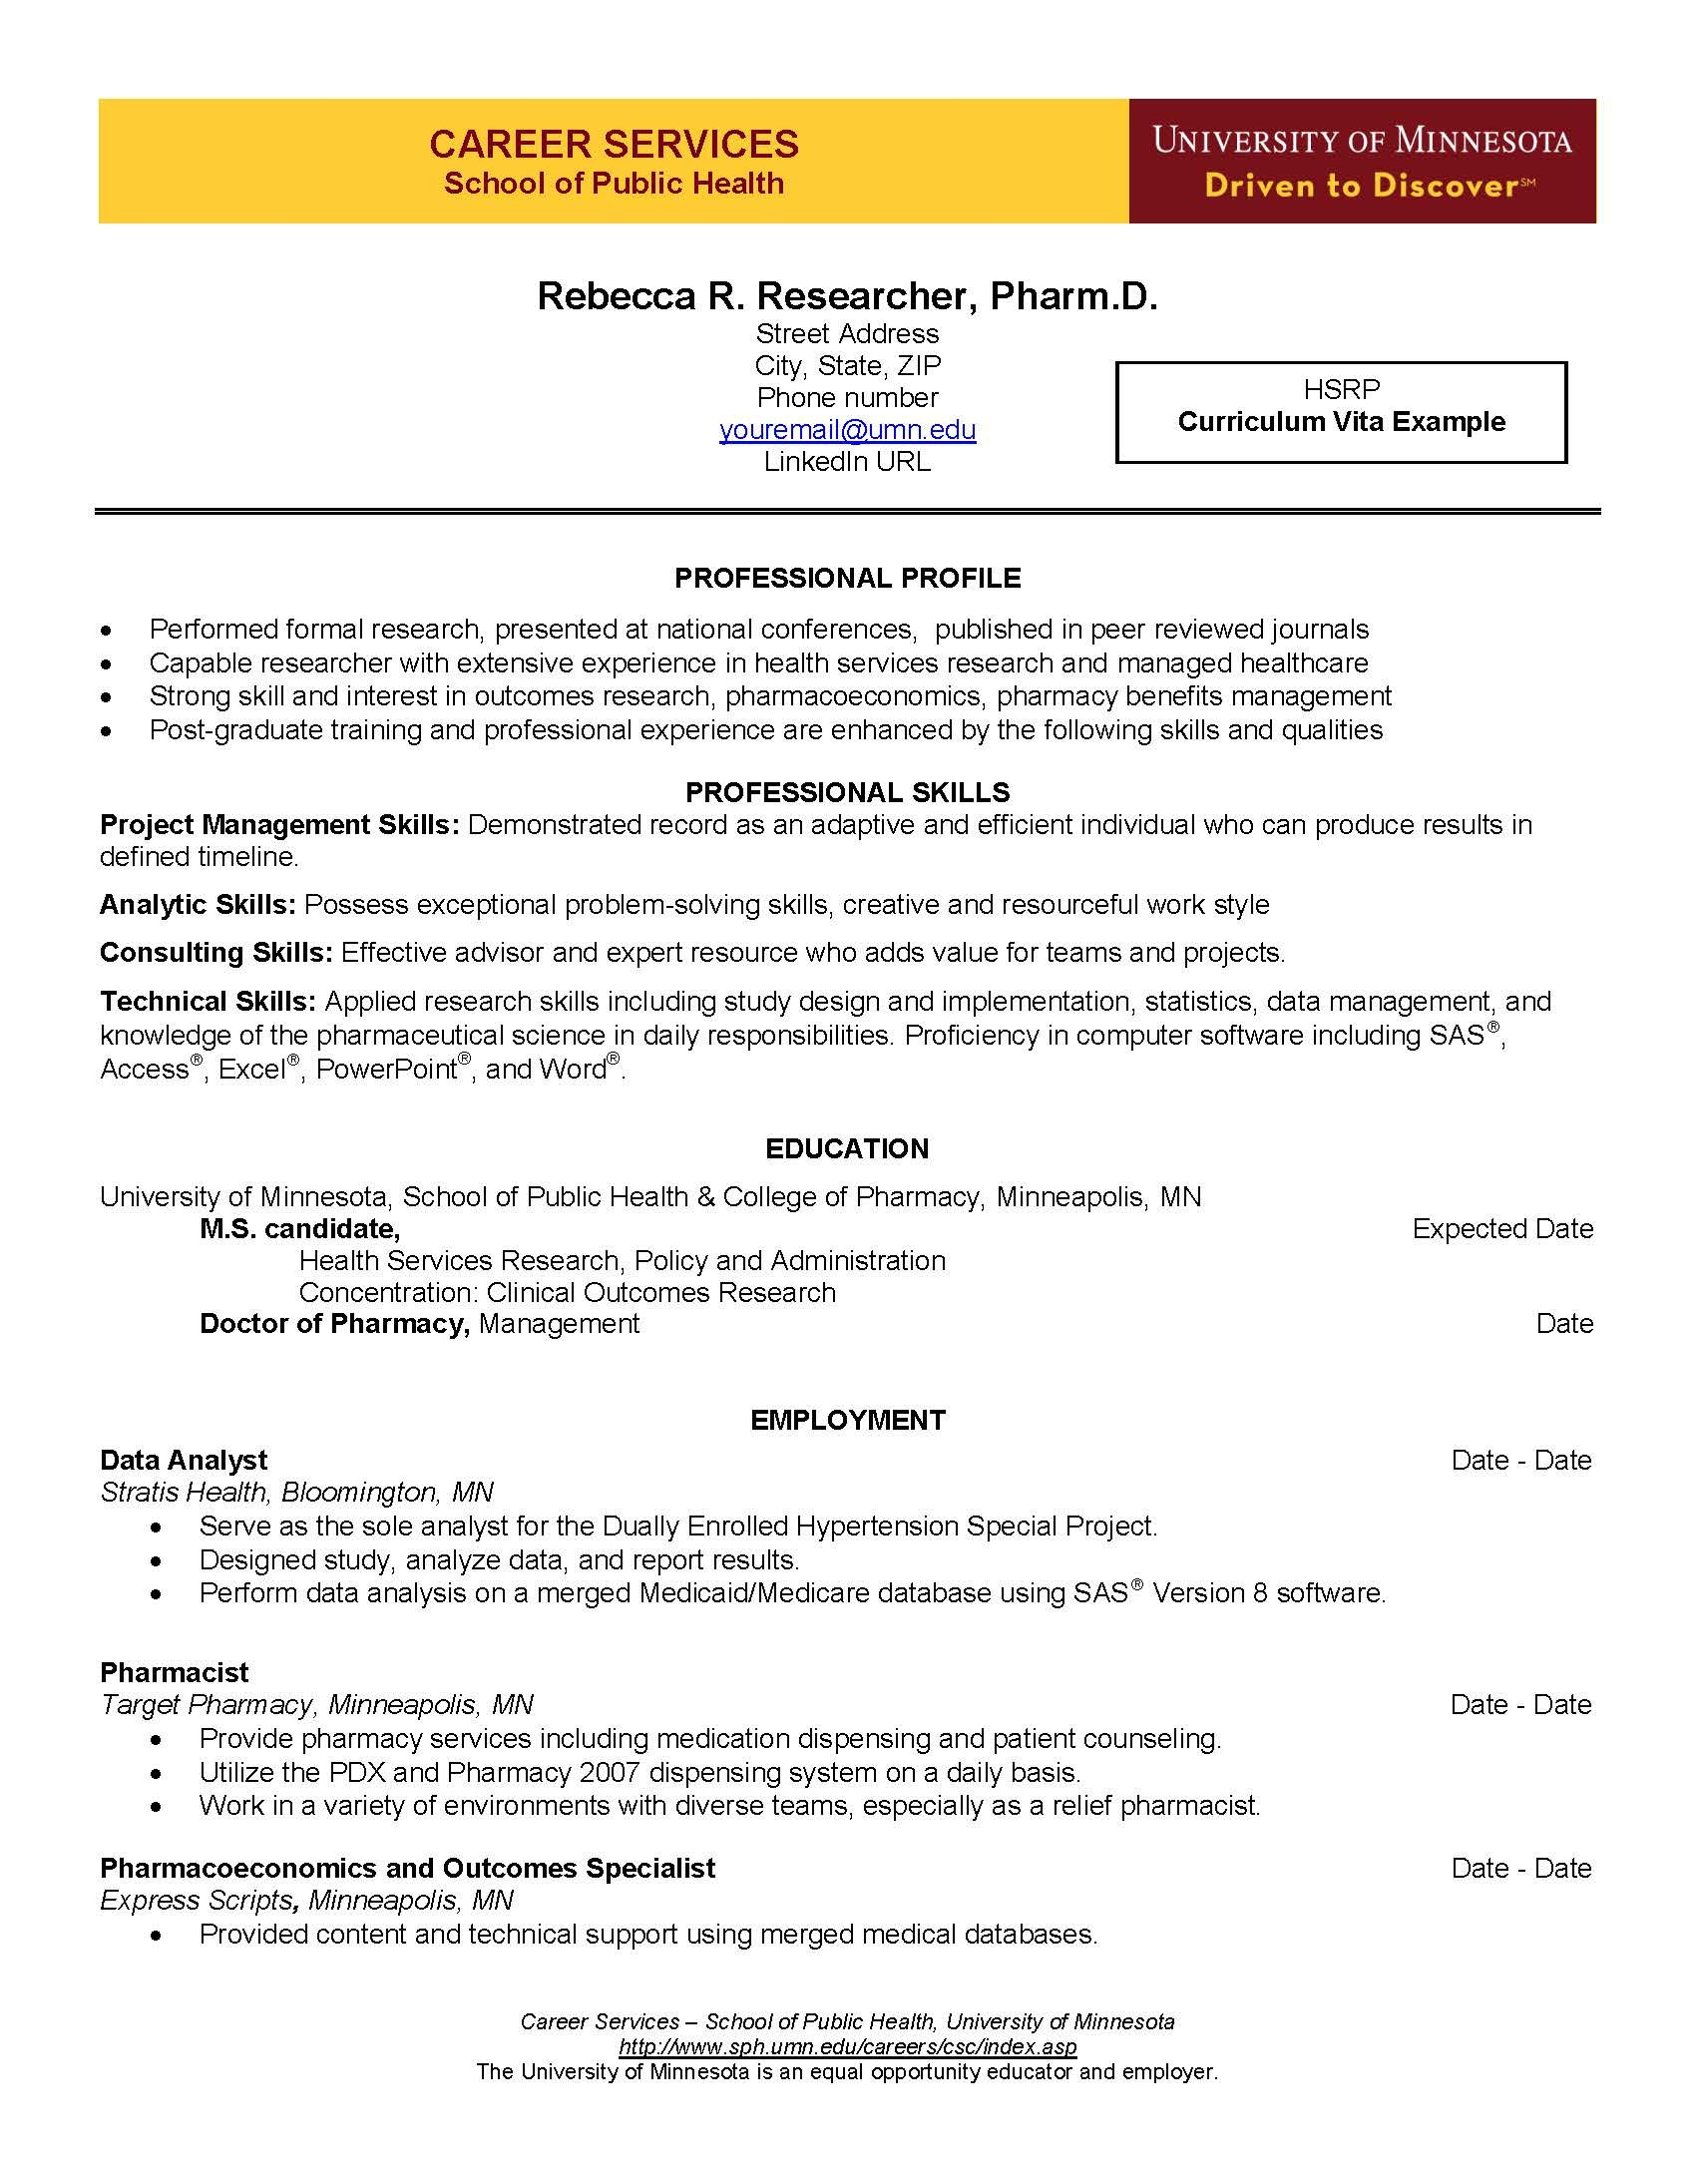 cv categories part curriculum vita guide cv example page 1